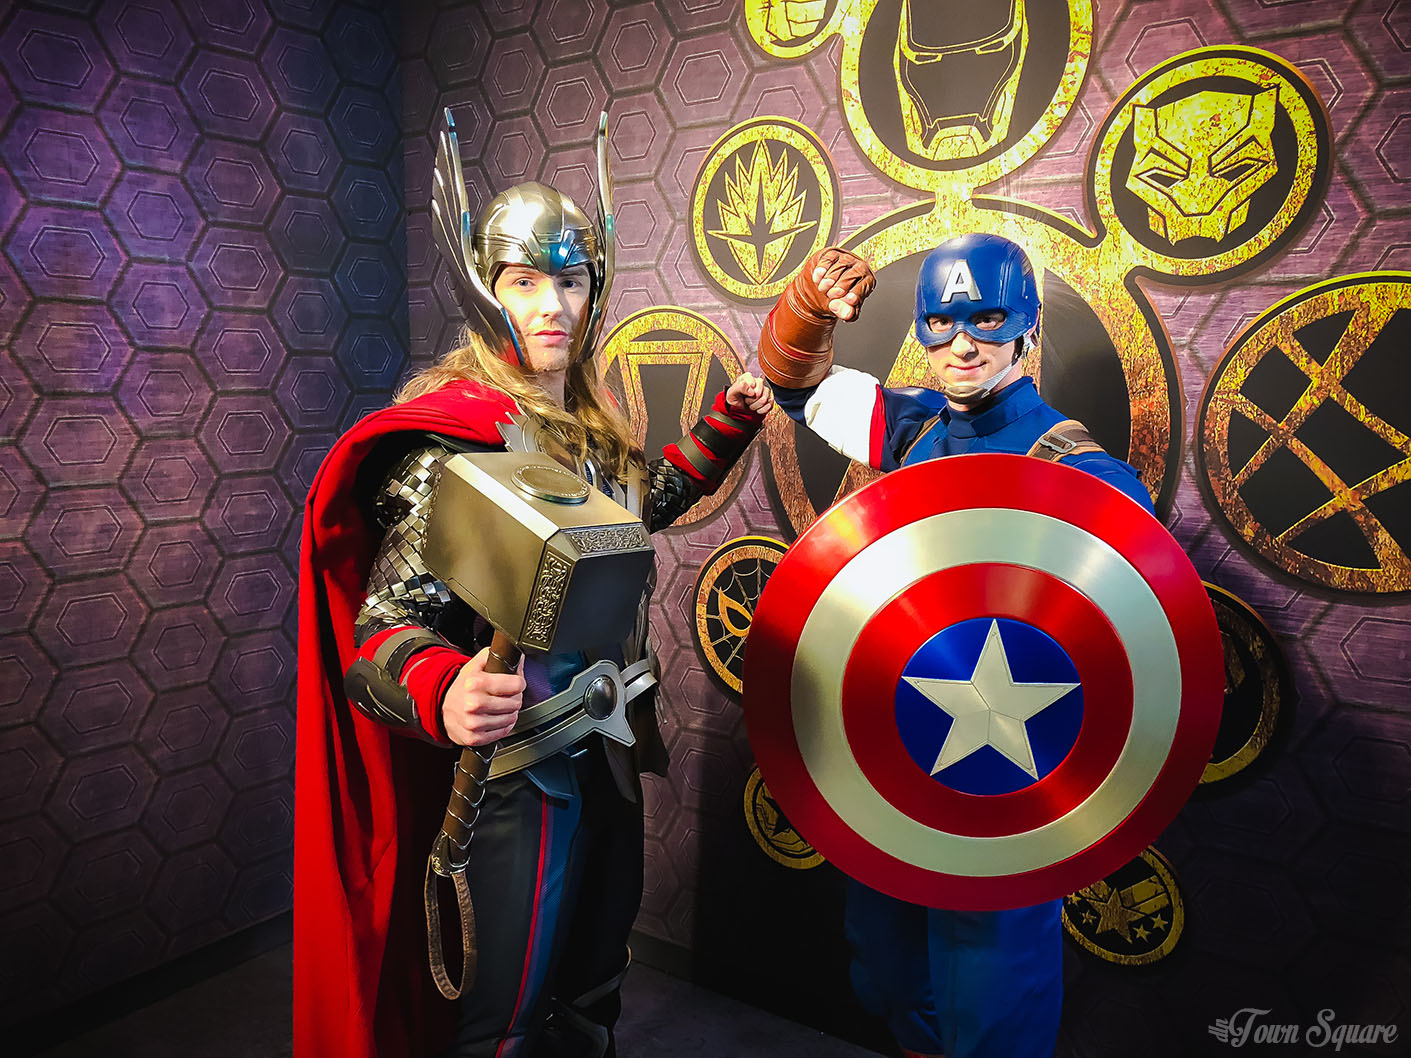 Marvel Signature Meal at Disneyland Paris - Thor and Captain America